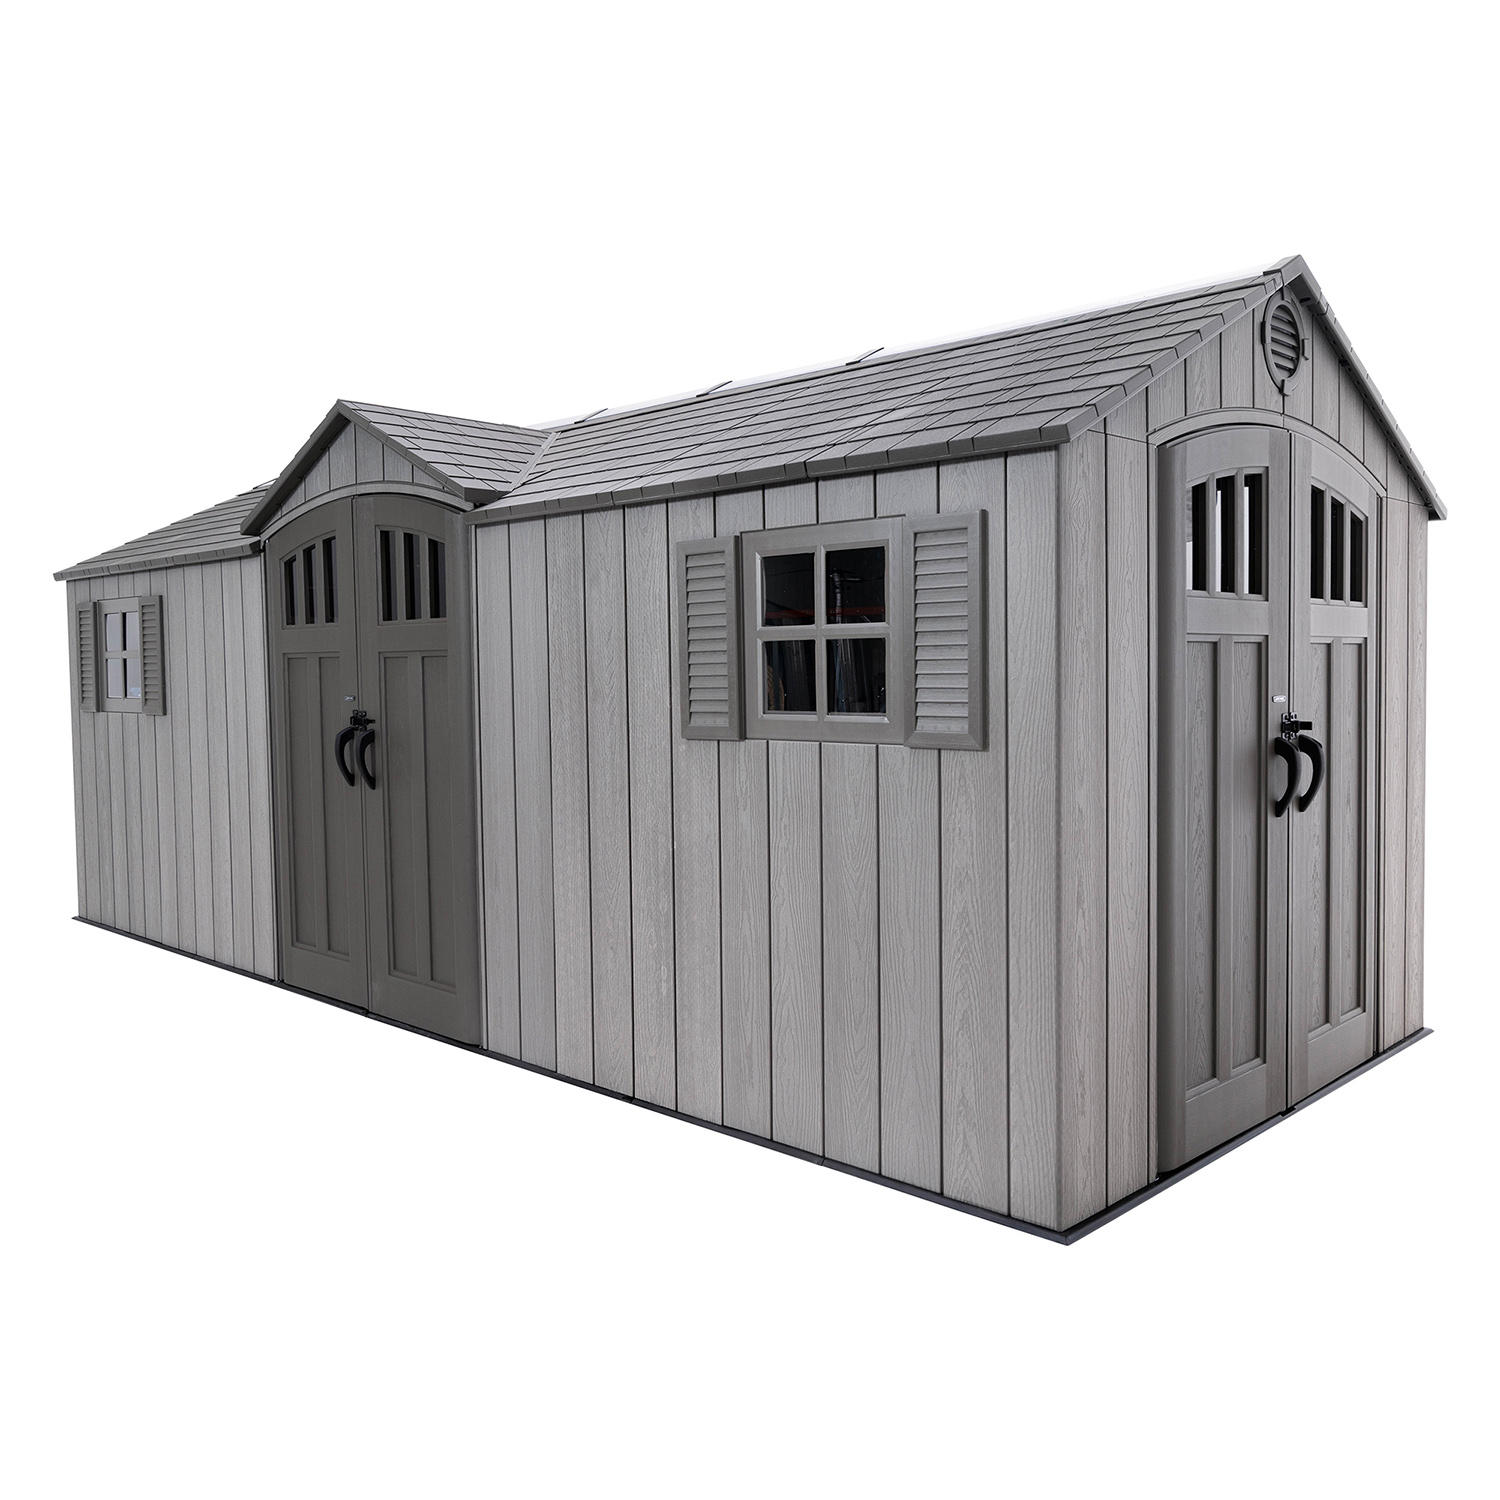 Lifetime 20' x 8' Outdoor Storage Shed (60351)